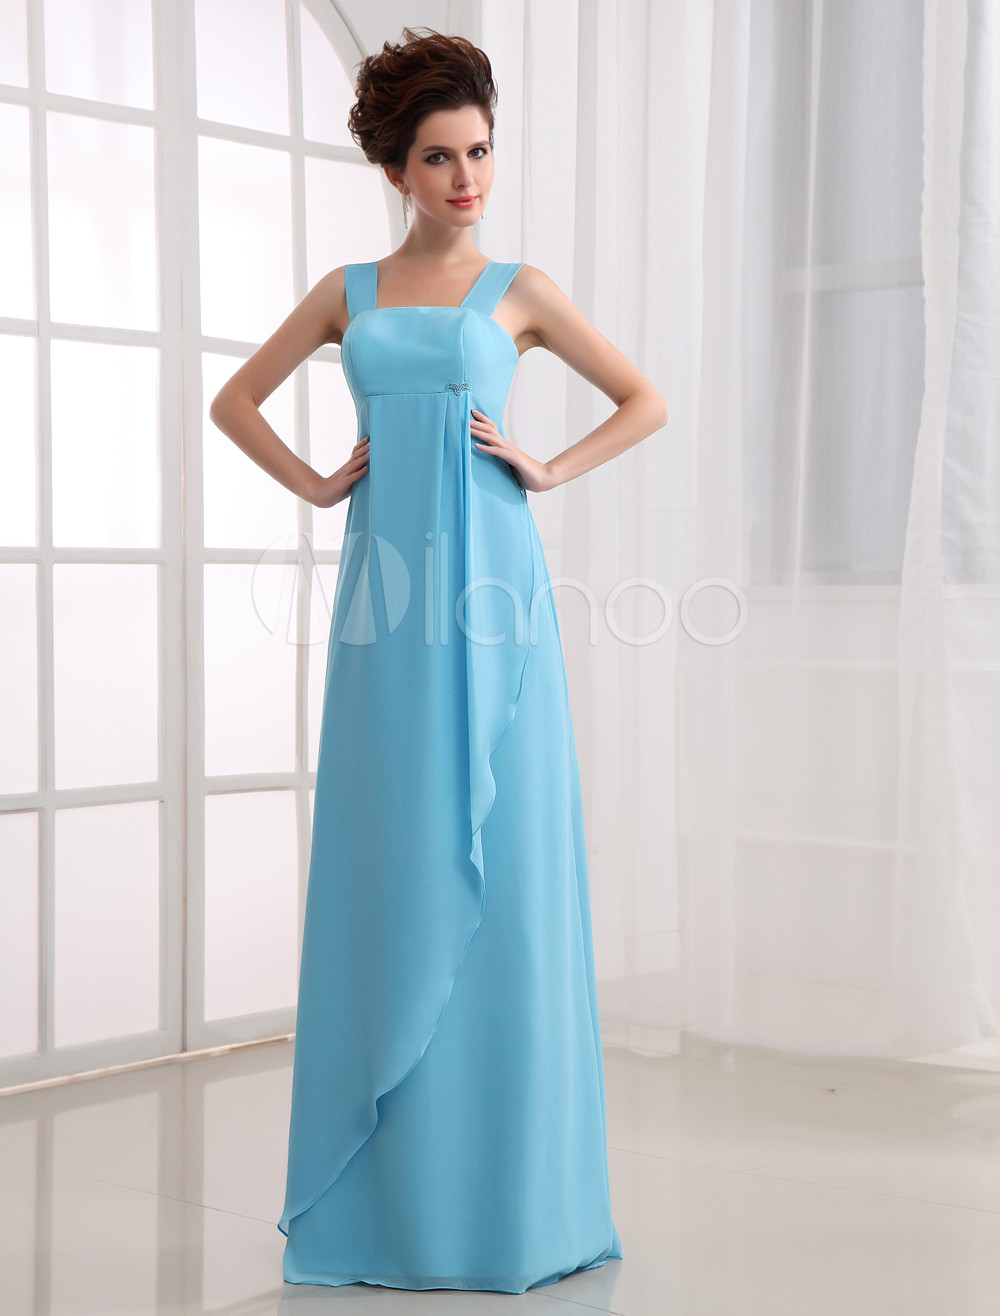 Fabulous Empire Waist Floor Length Satin Chiffon Bridesmaid Dress